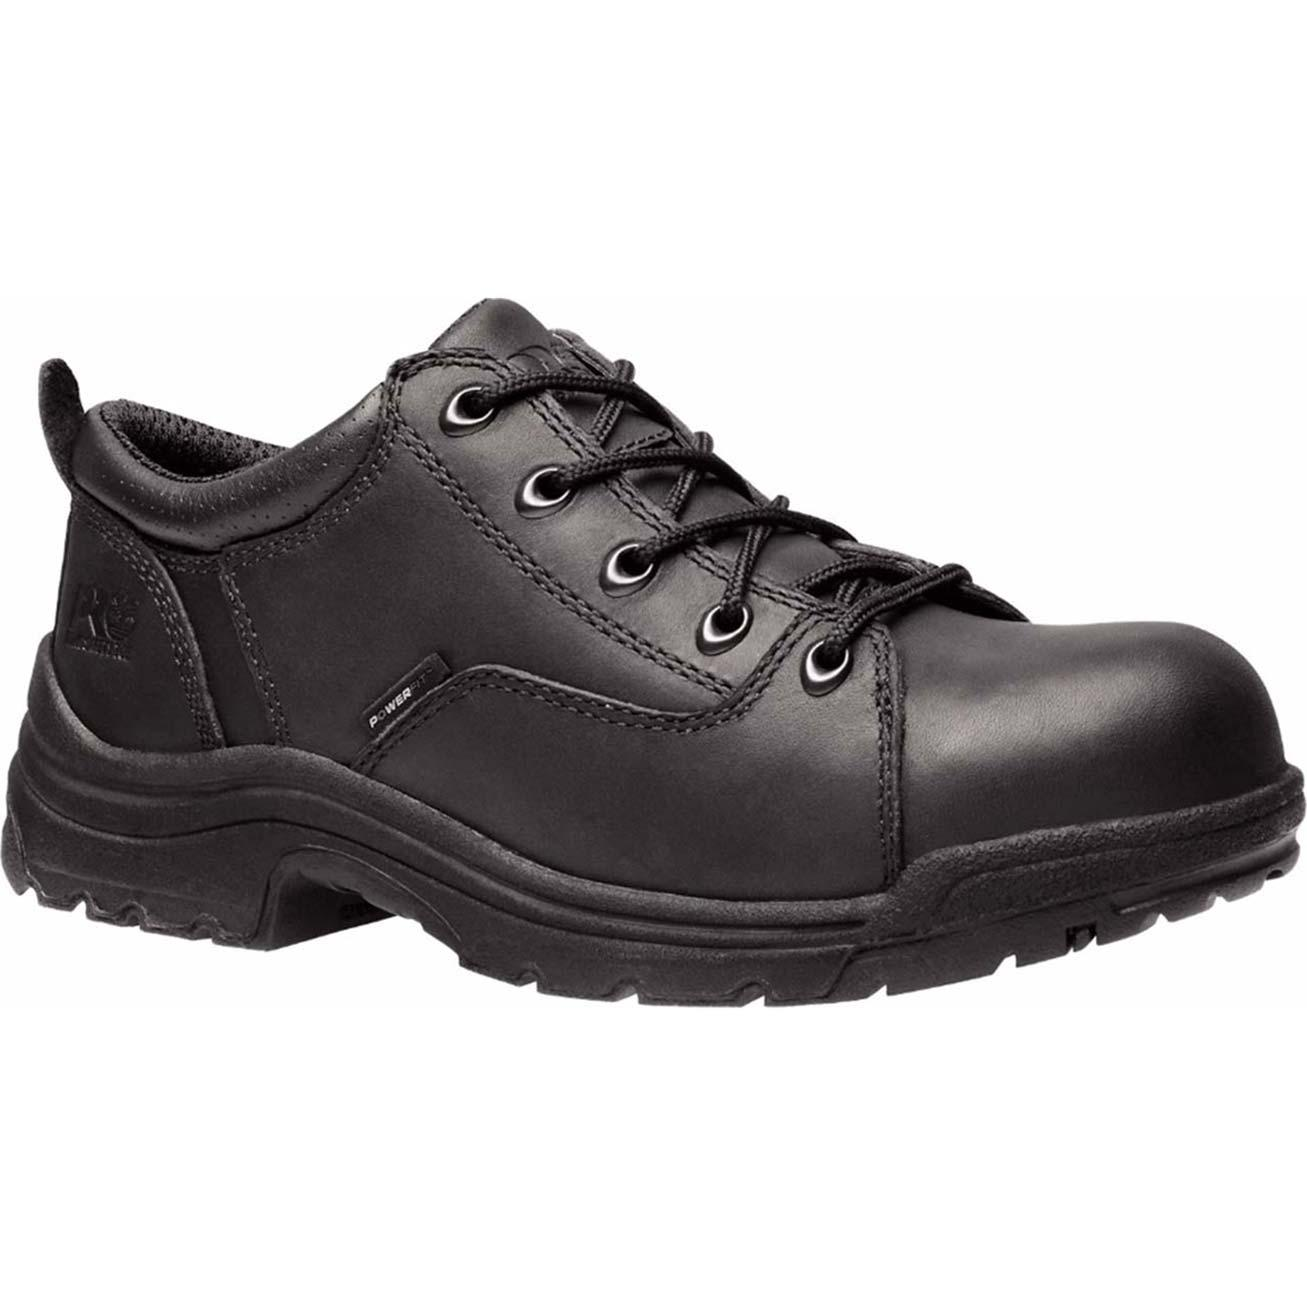 Timberland Pro Oxford Titan Alloy Safety Toe Shoes Black